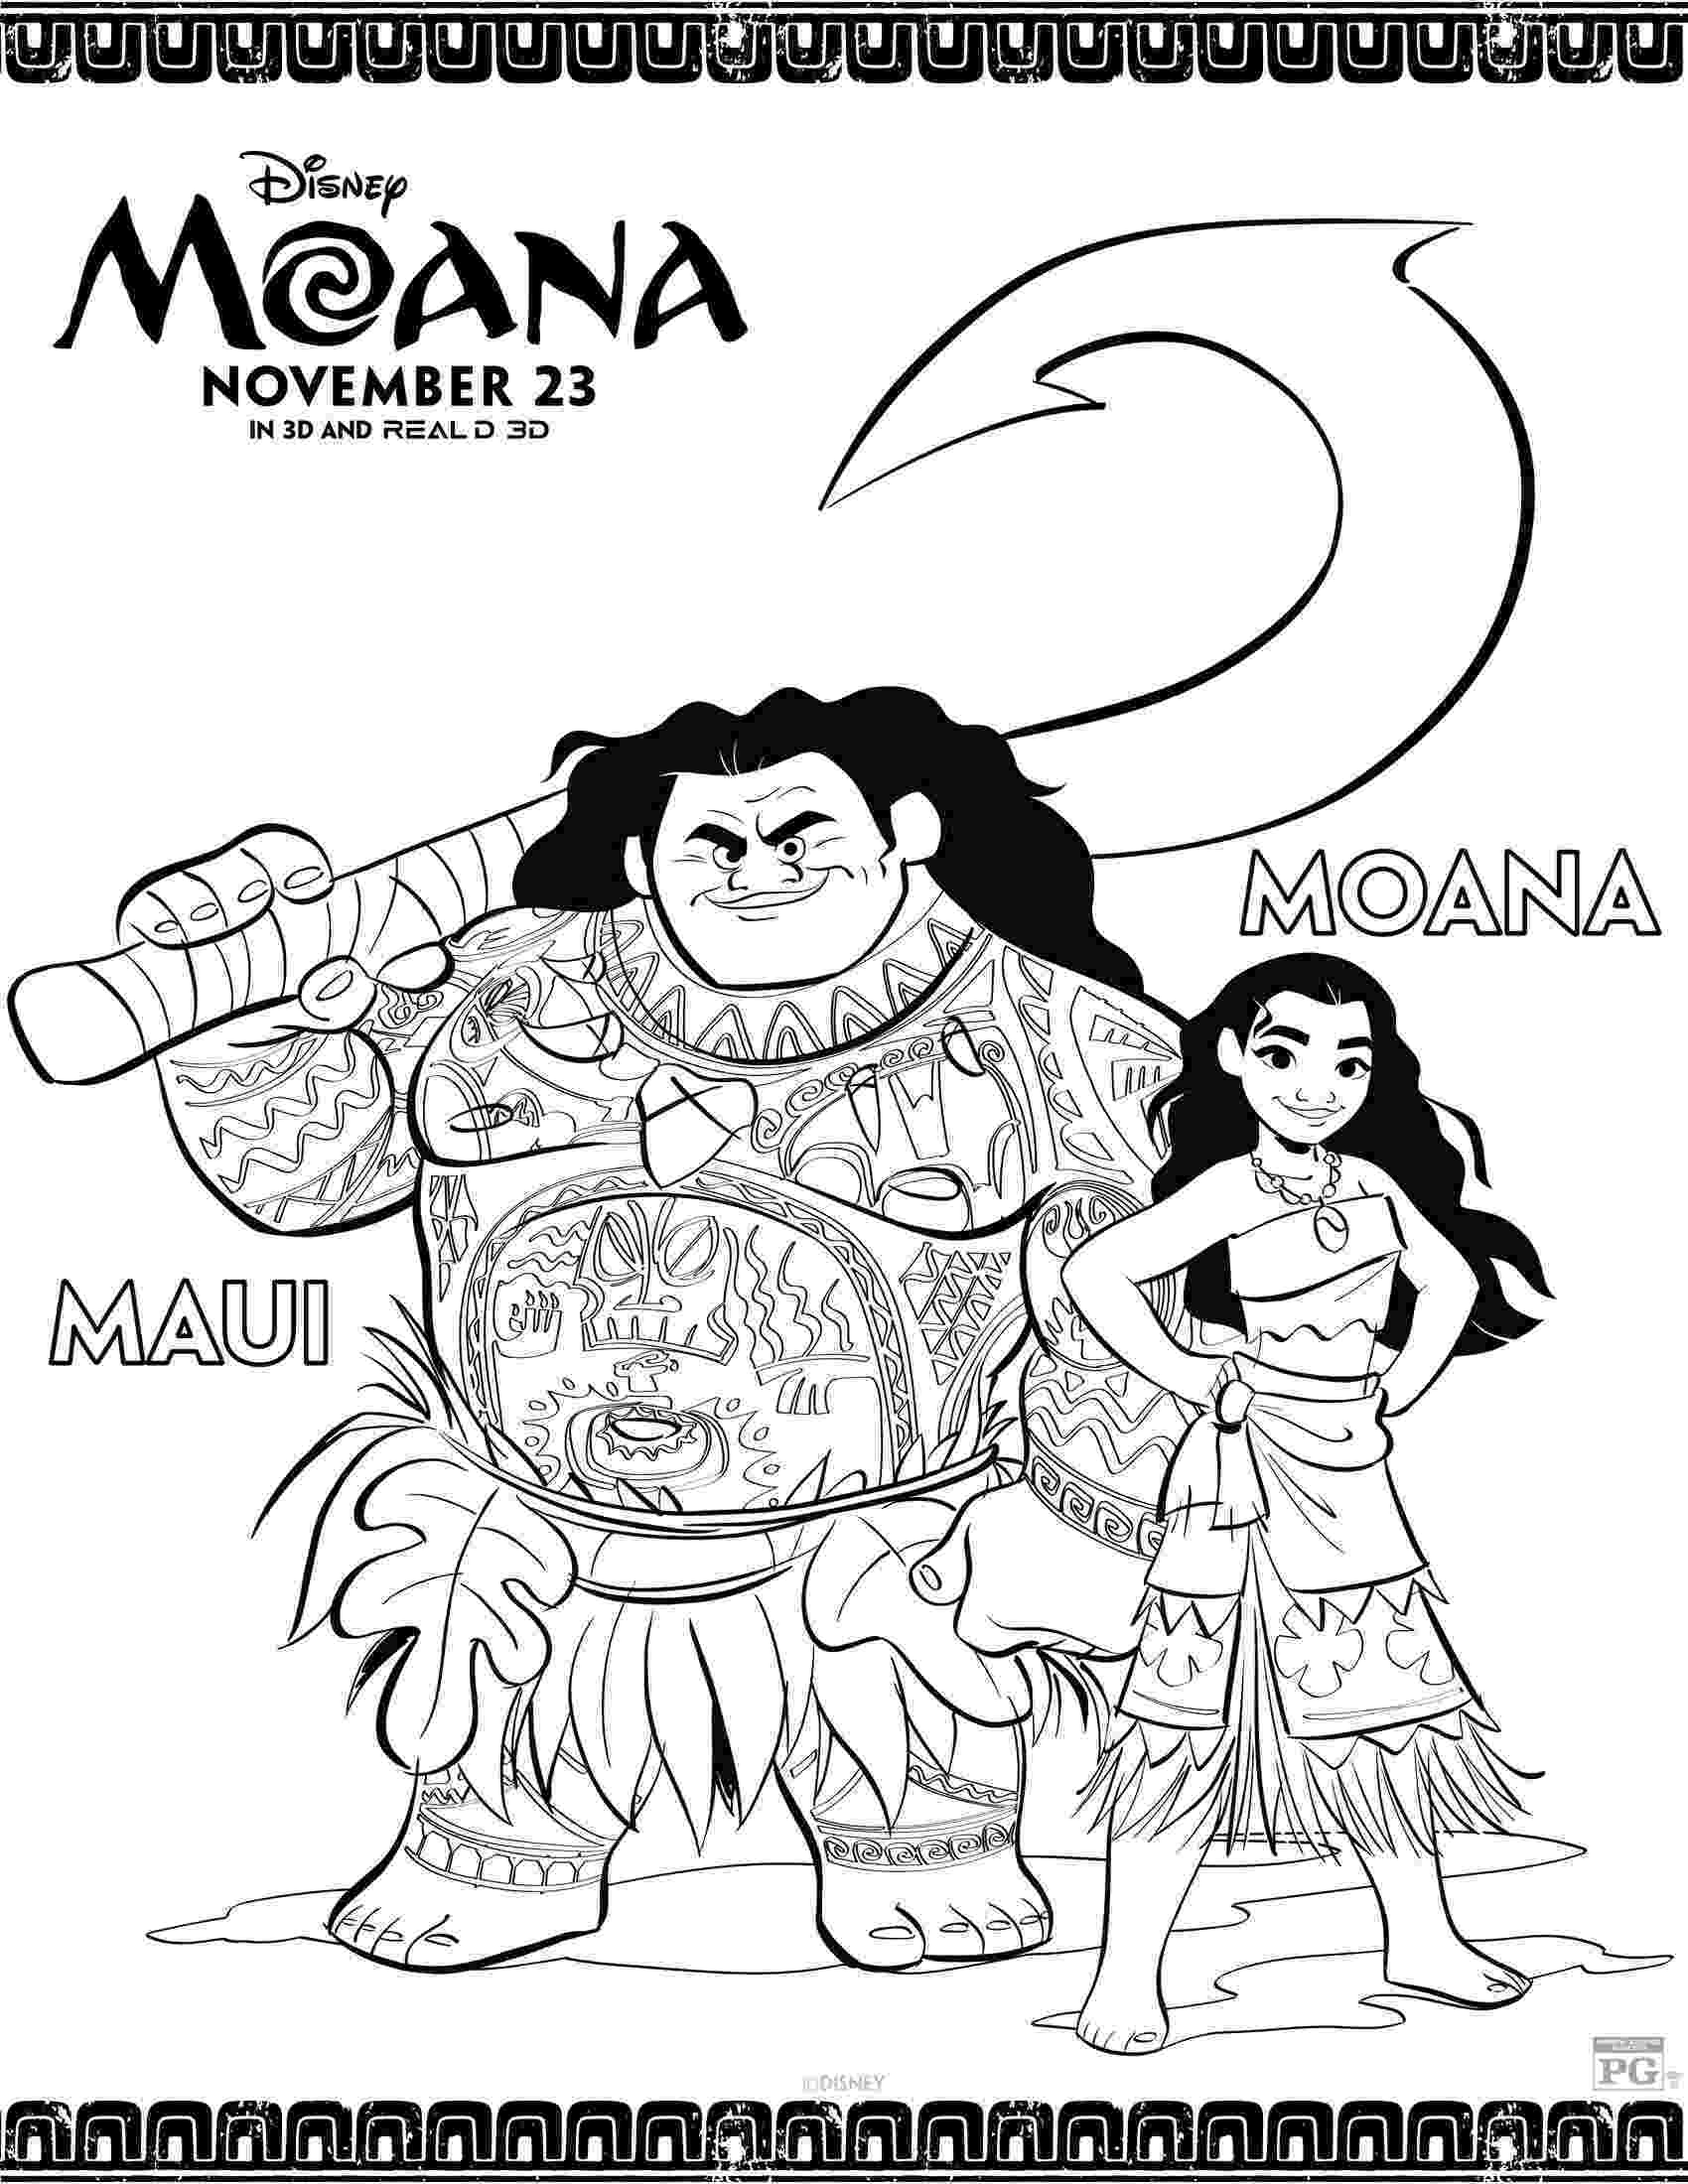 print moana coloring pages disney39s moana coloring pages and activity sheets printables coloring print moana pages